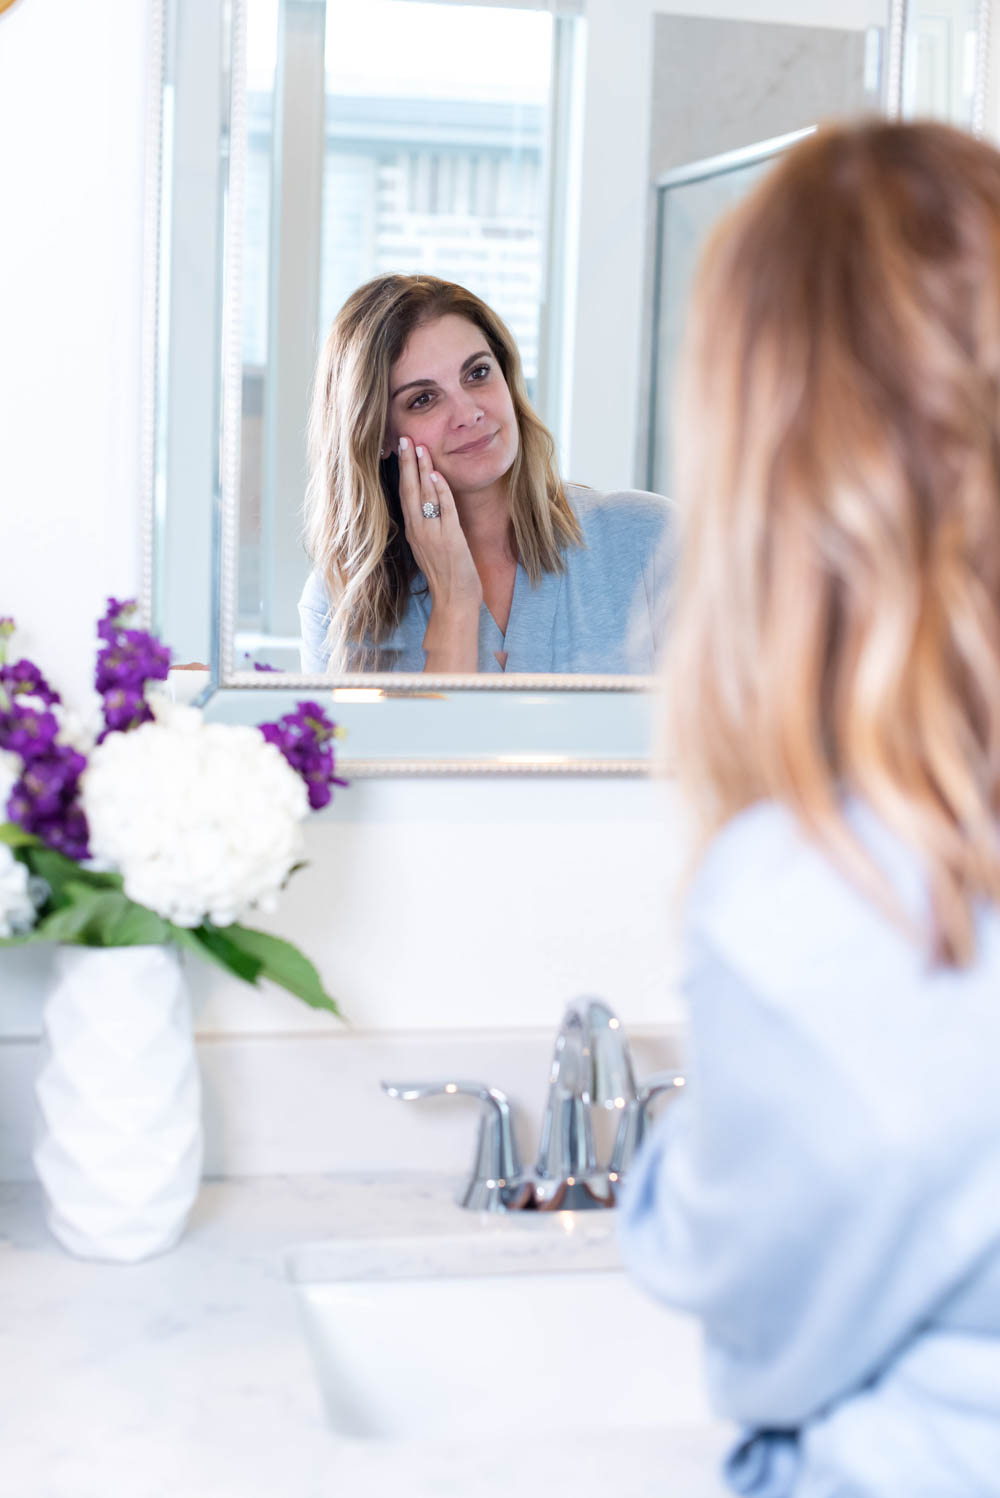 Using safe and cleaner beauty products on your face are game-changing in your morning skincare routine. This is a step by step guide on the best skincare products to use to fight aging. #ABlissfulNest #skincare #skincareroutine40s